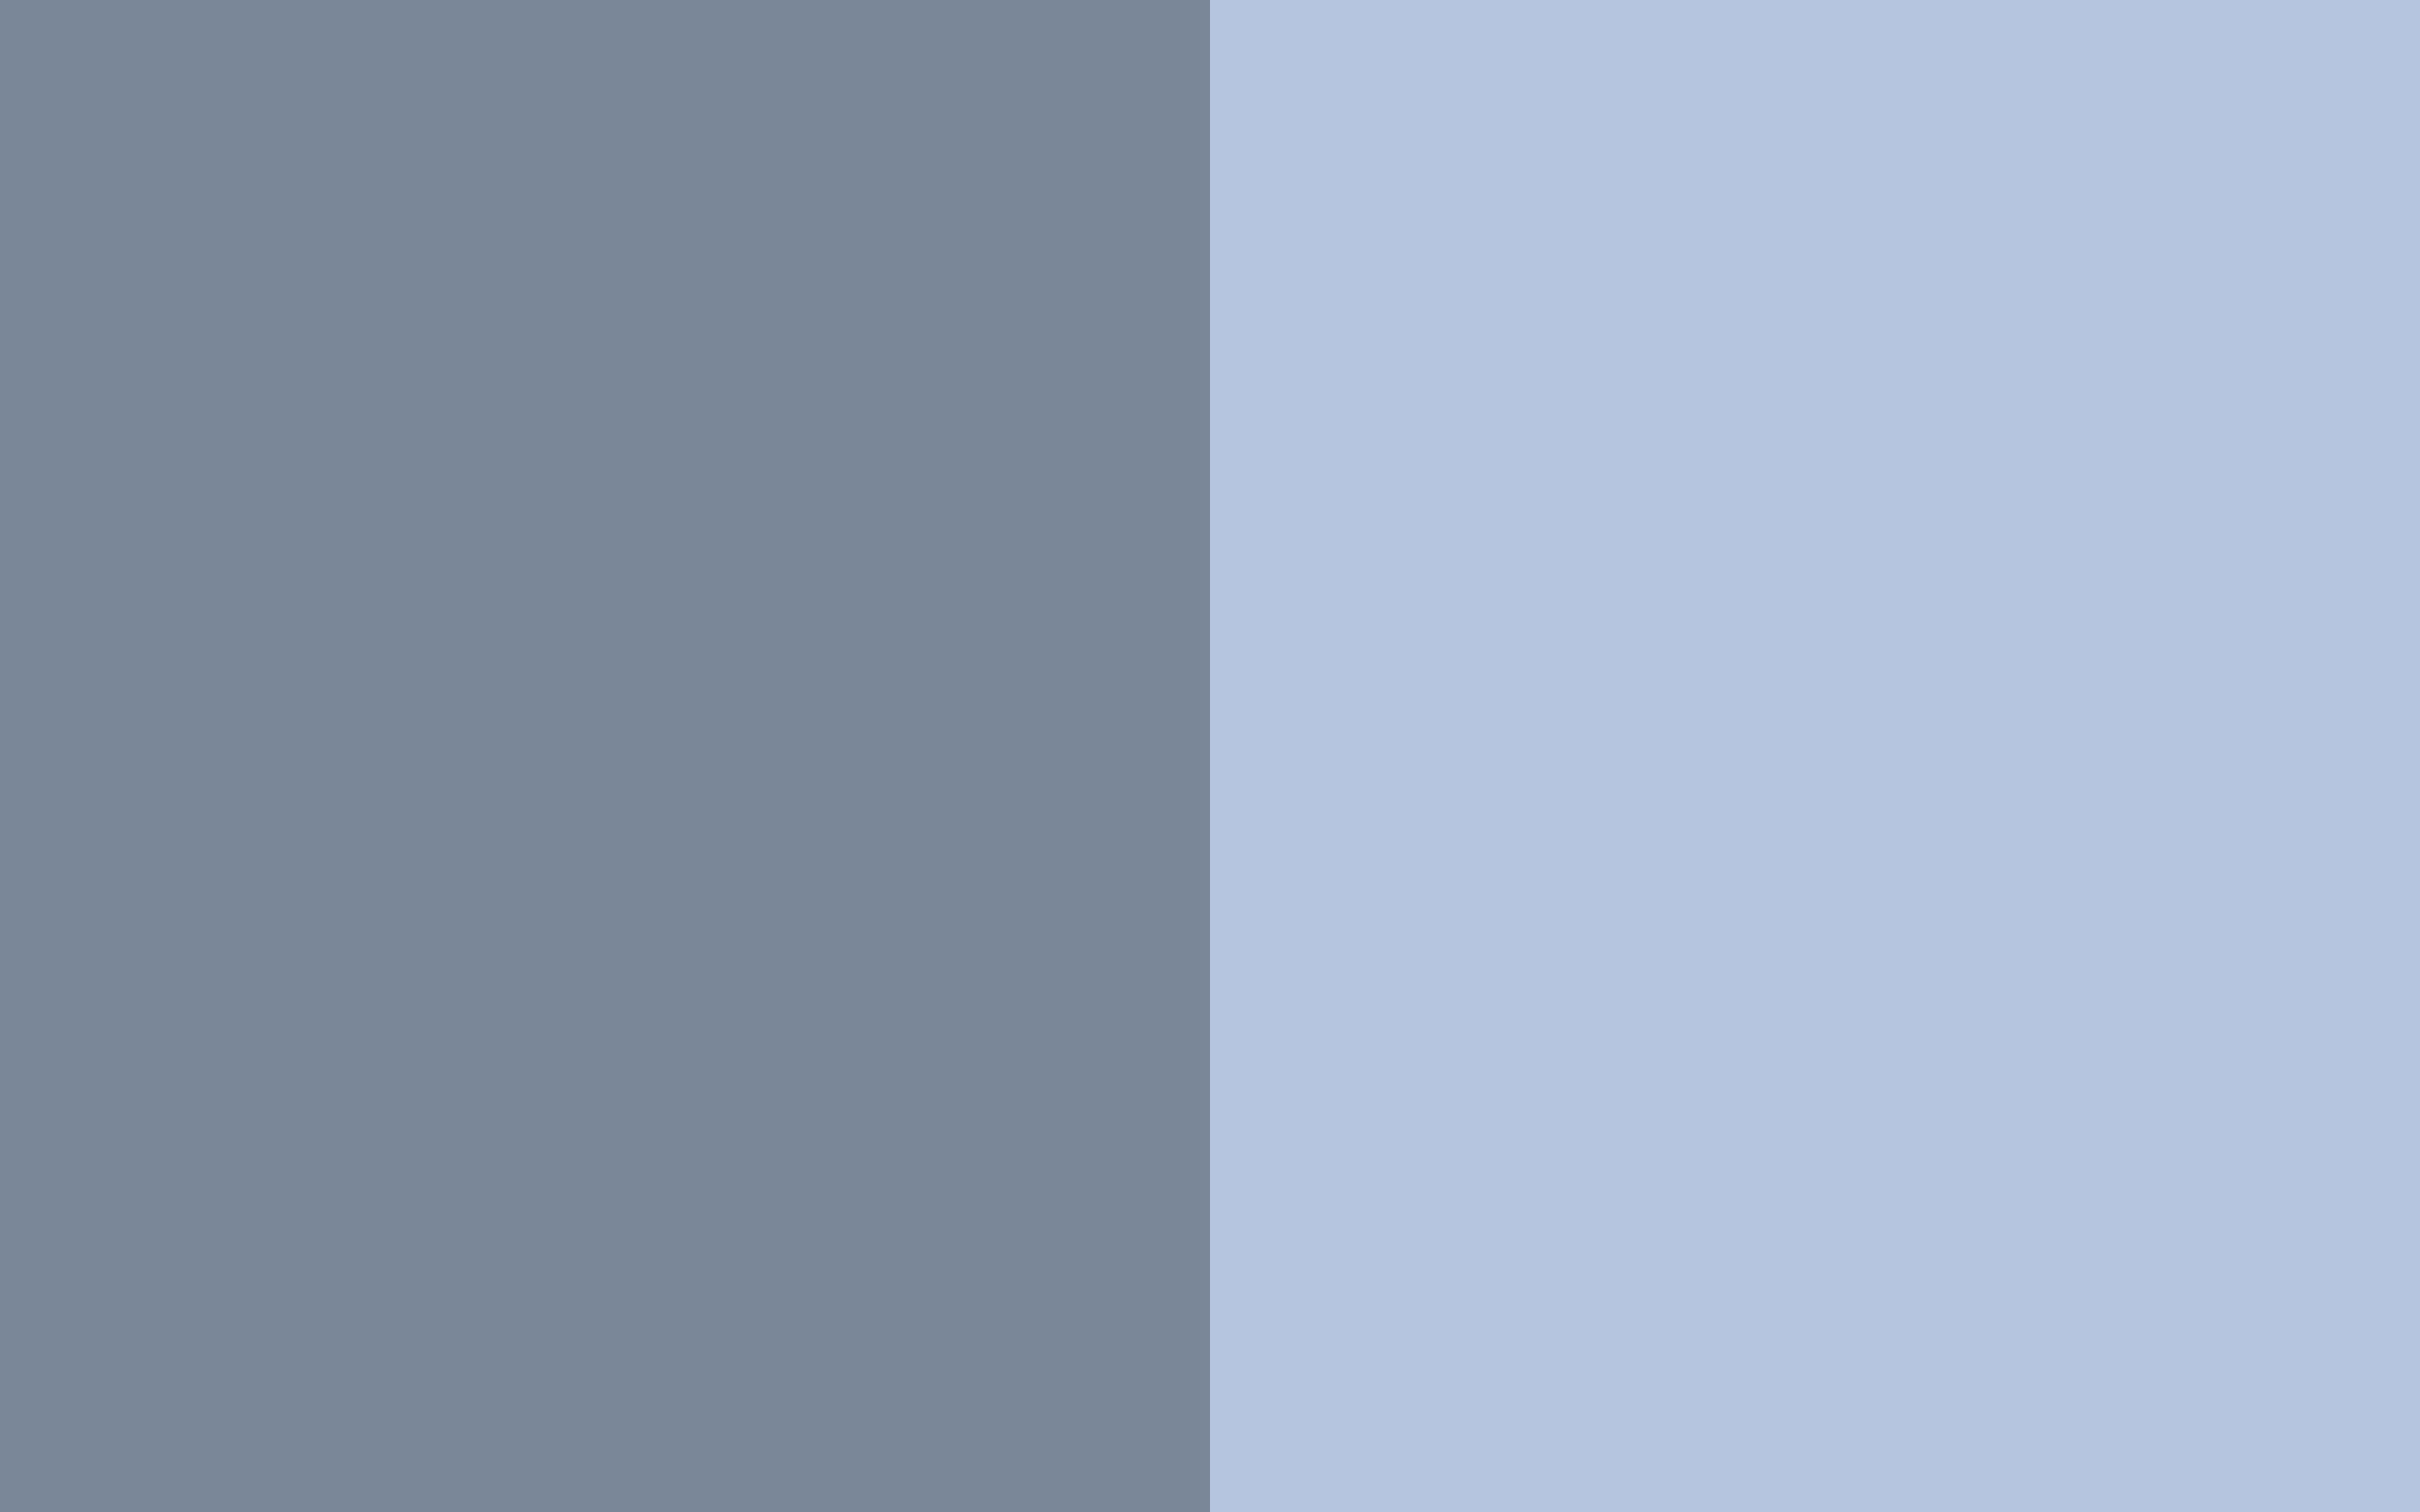 Gray And Blue Wallpaper  Wallpapersafari. Hells Kitchen Free Online. Hells Kitchen Wilmington. Brubaker Kitchens. Best Kitchen Ever. Tv Under Cabinet Kitchen. Kitchen Jobs In Hospitals. Kitchen And Living Room Colors. Flat Kitchen Cabinets